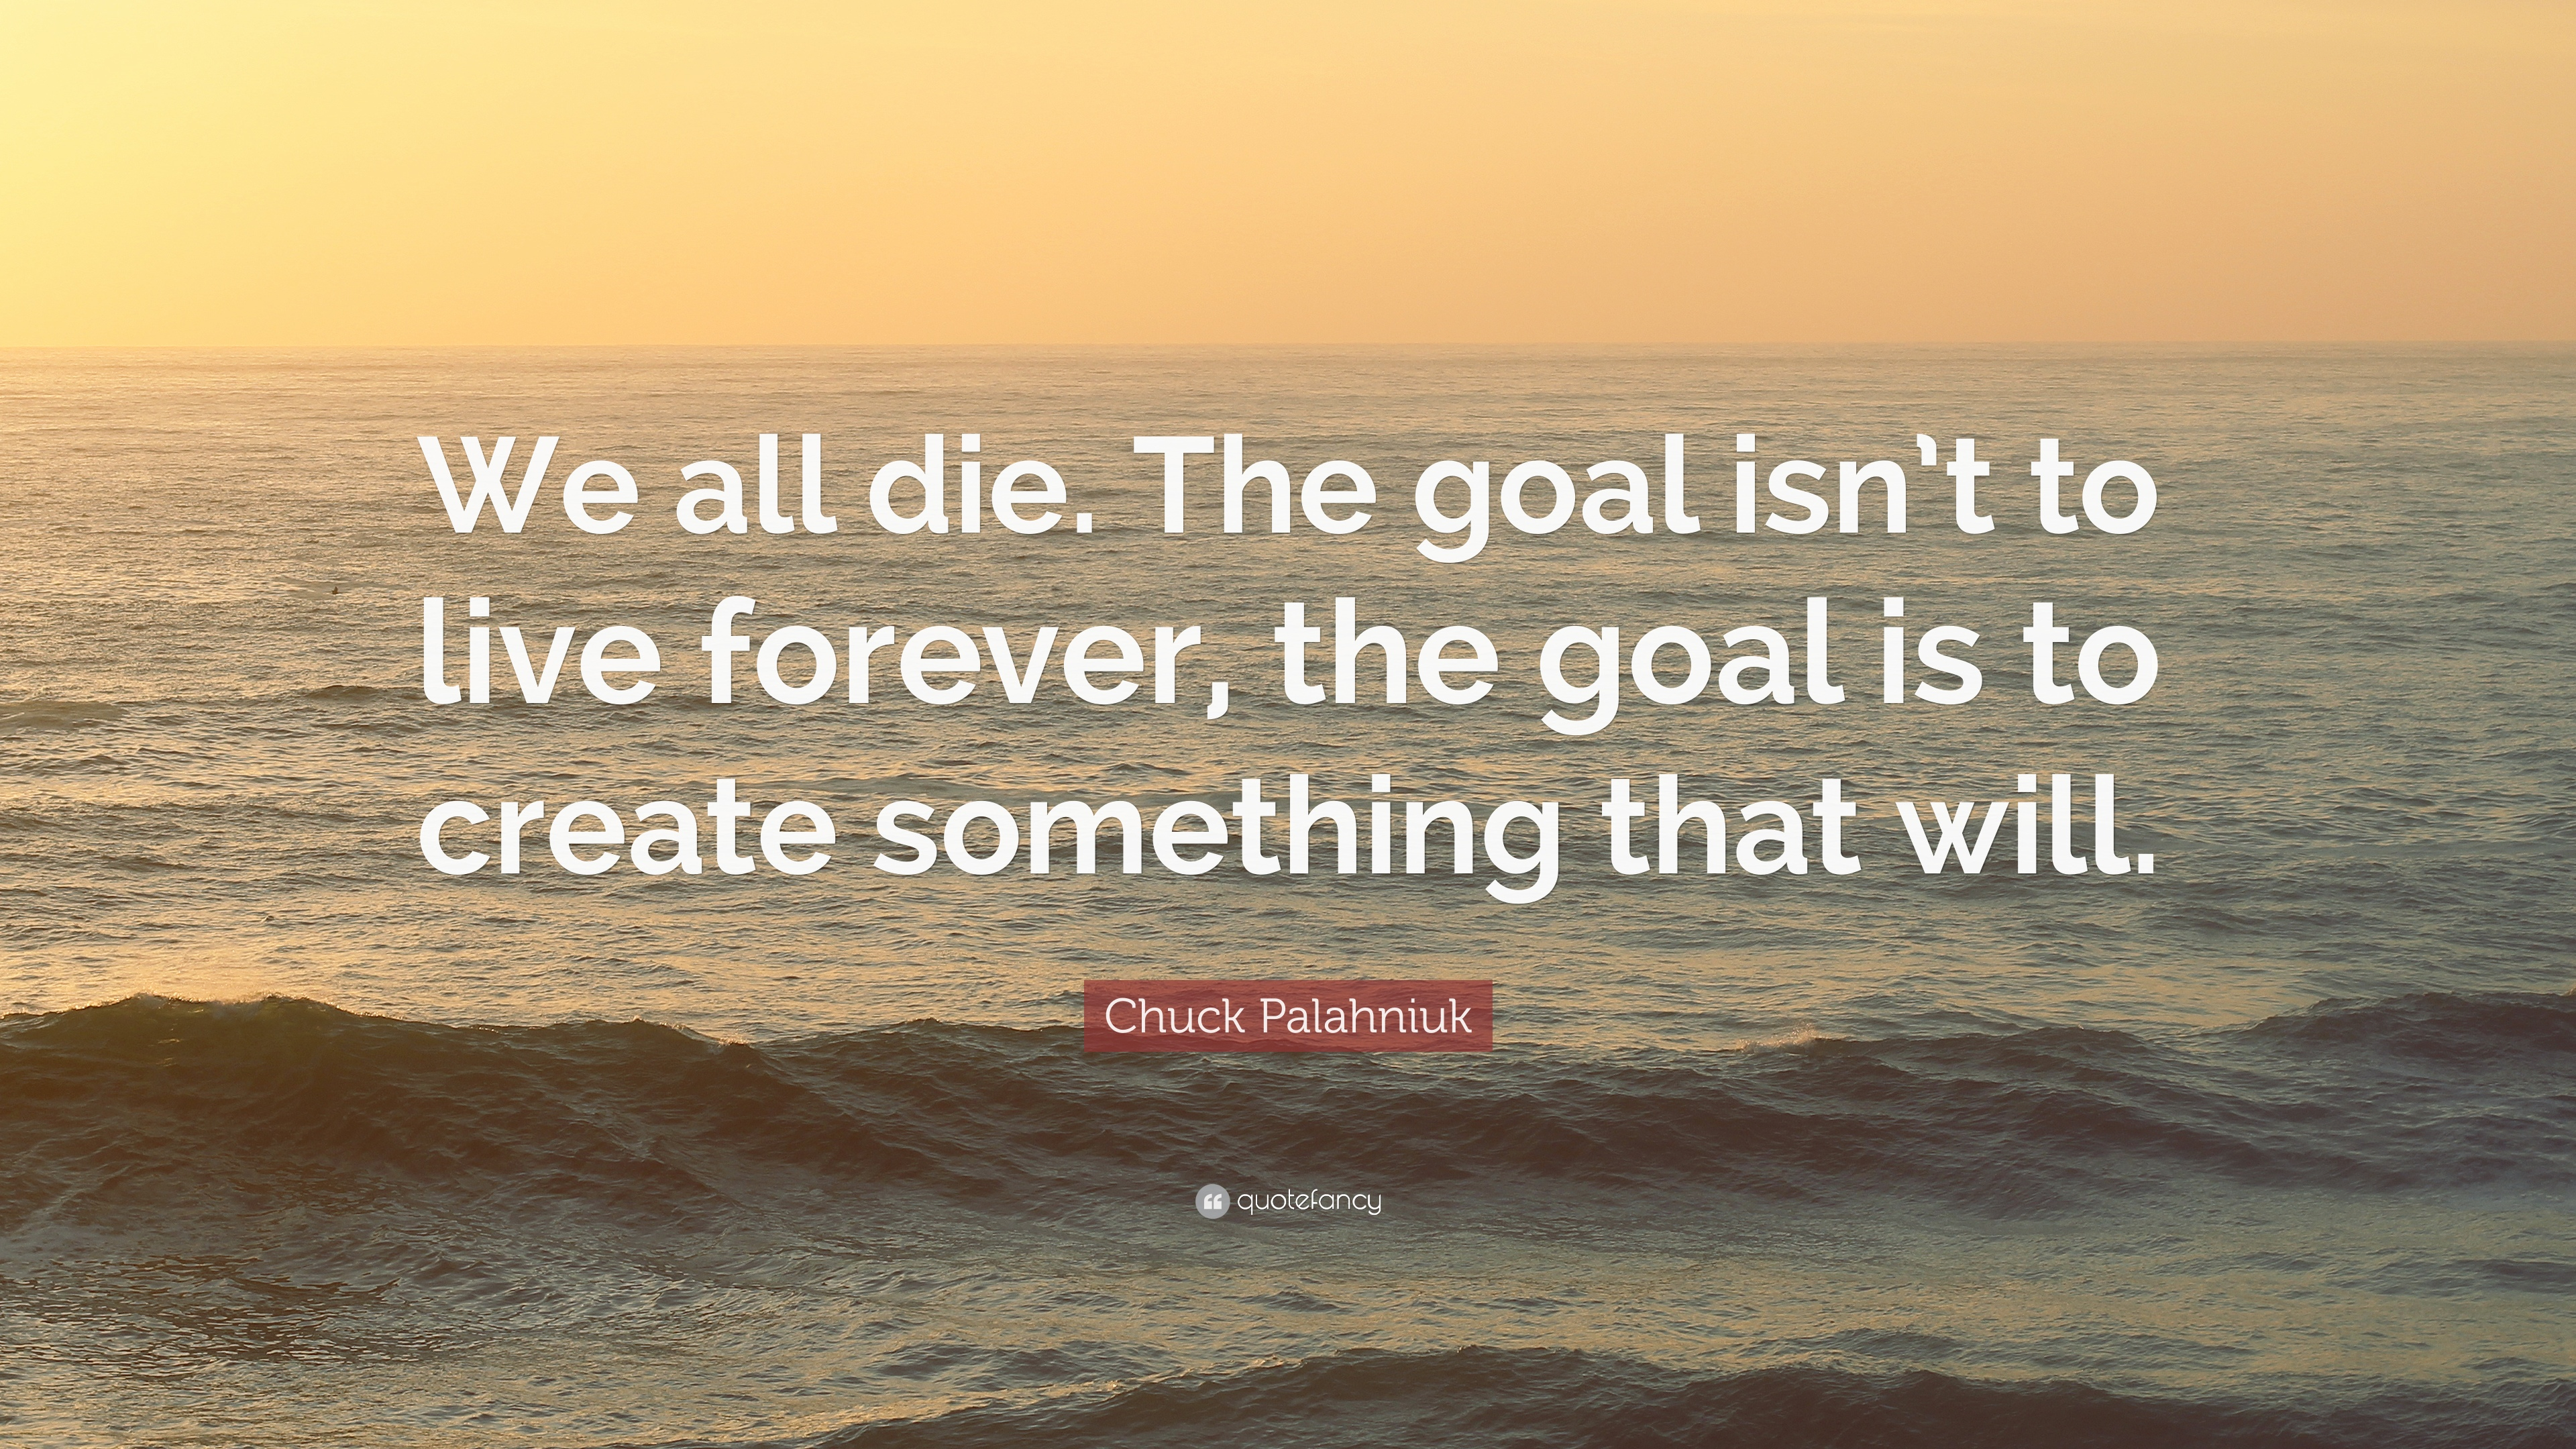 Chuck Palahniuk Quote We All Die The Goal Isn T To Live Forever The Goal Is To Create